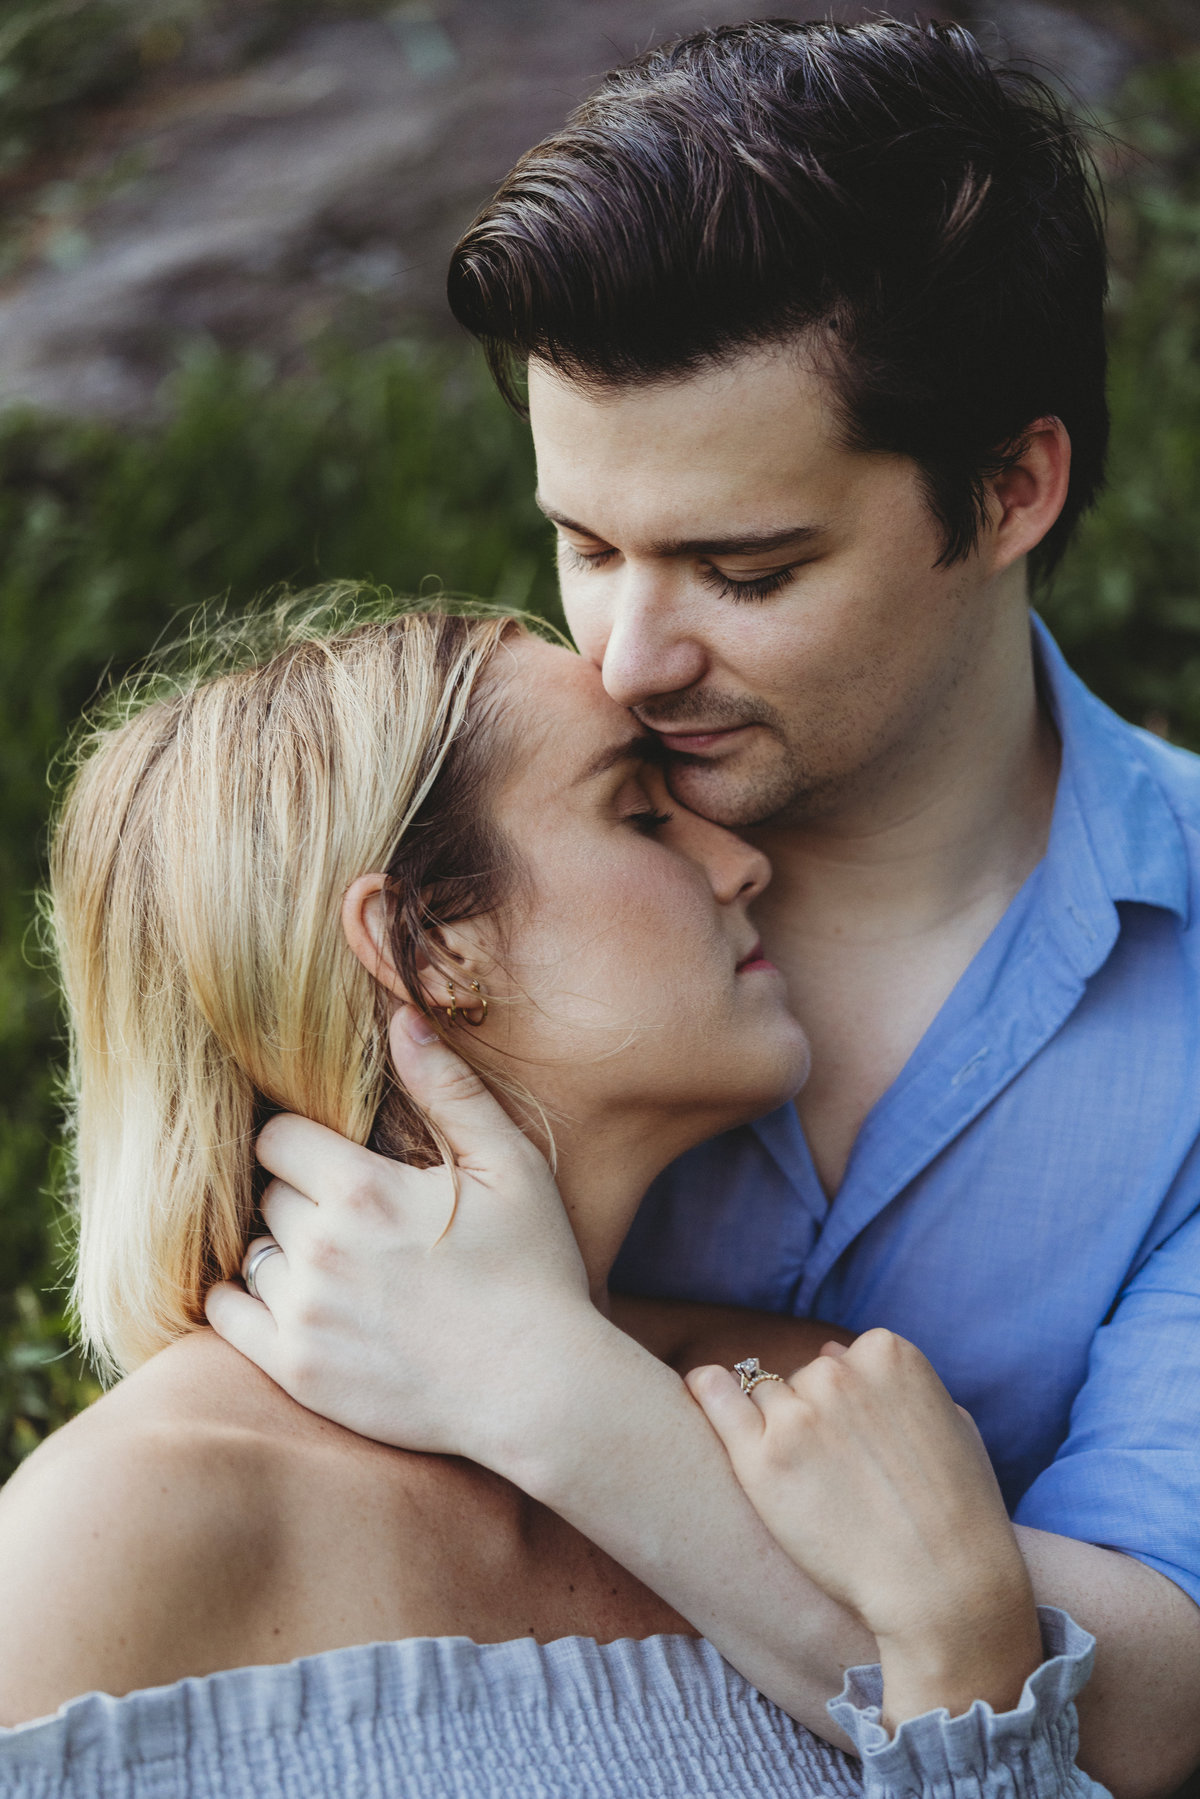 ENGEMENT SESSION INTIMATE LIFESTYLE COUPLES SESSION